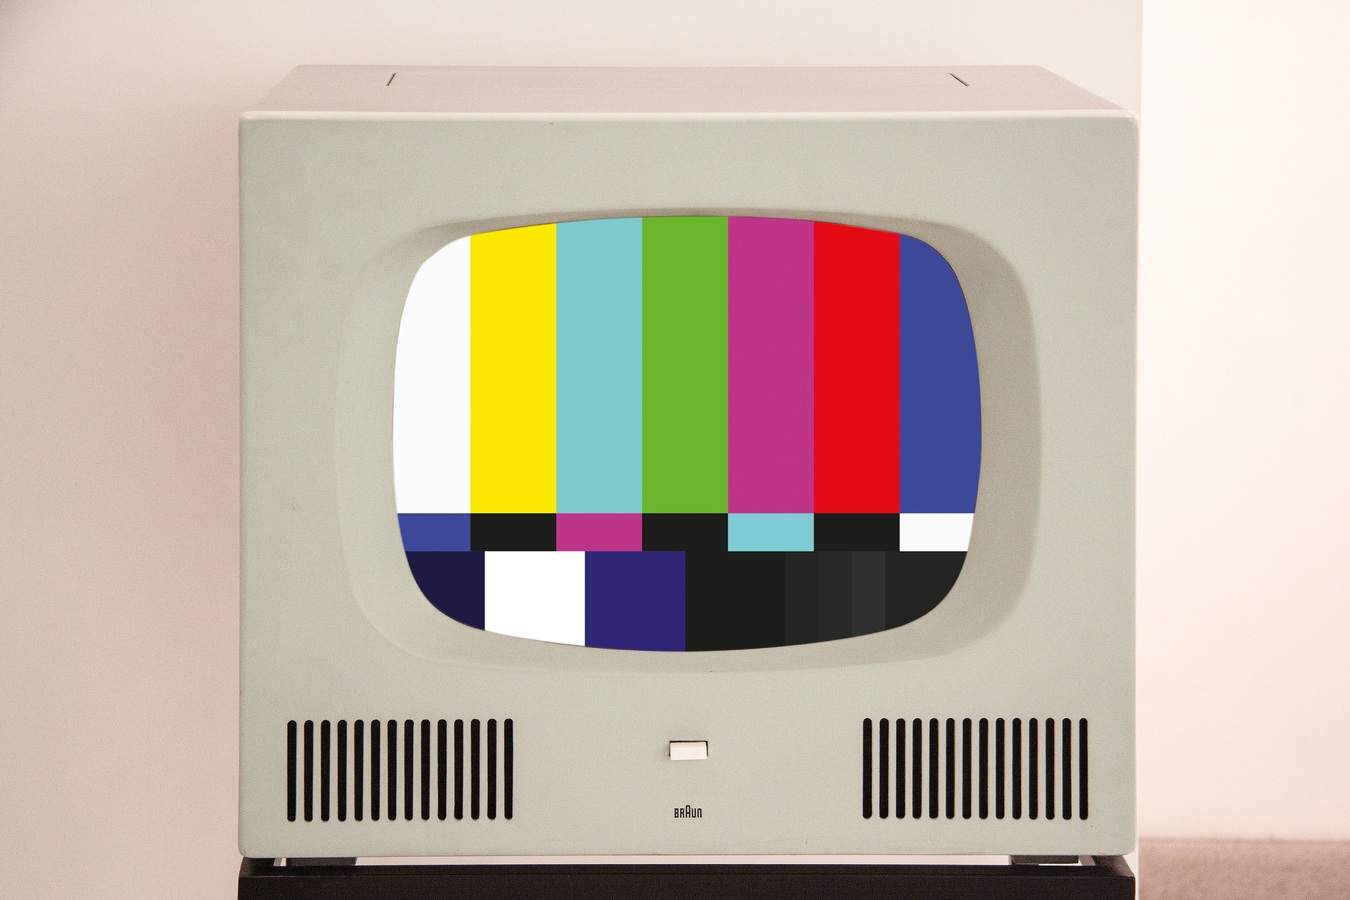 technology-retro-color-brown-gadget-television-937335-pxhere-com